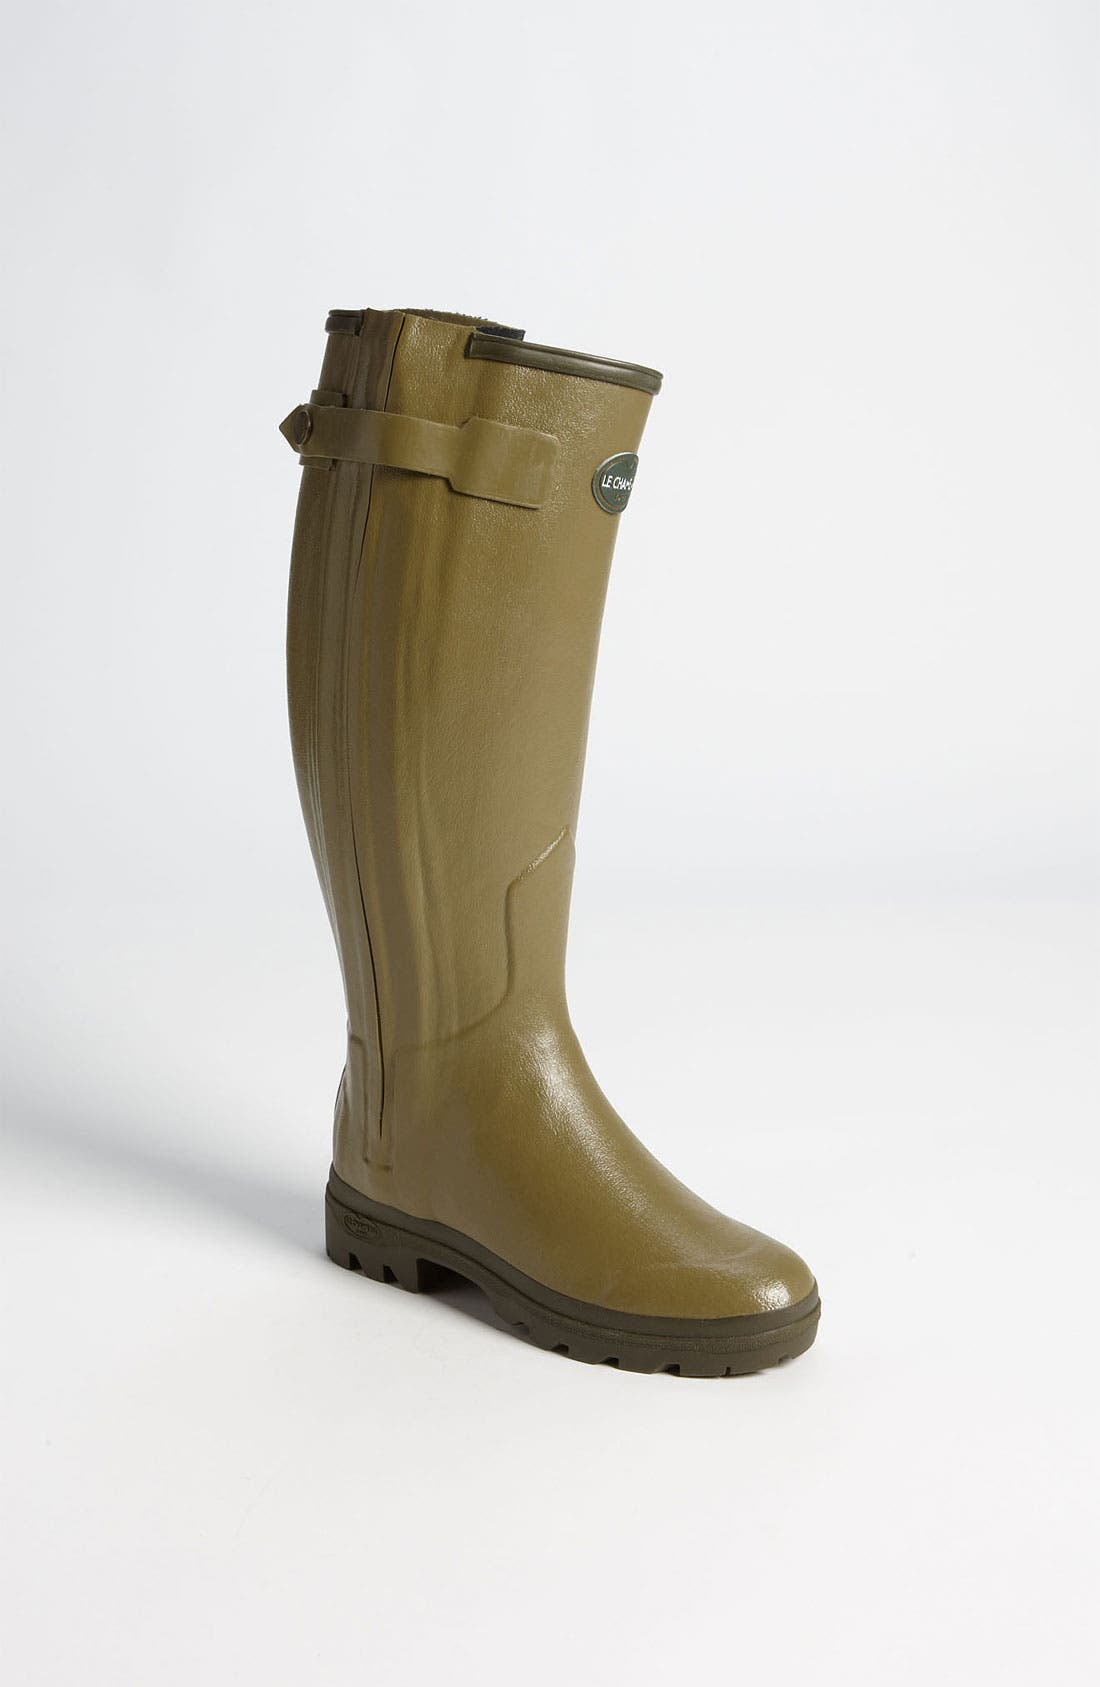 Alternate Image 1 Selected - Le Chameau 'Chasseur' Rain Boot (Women)